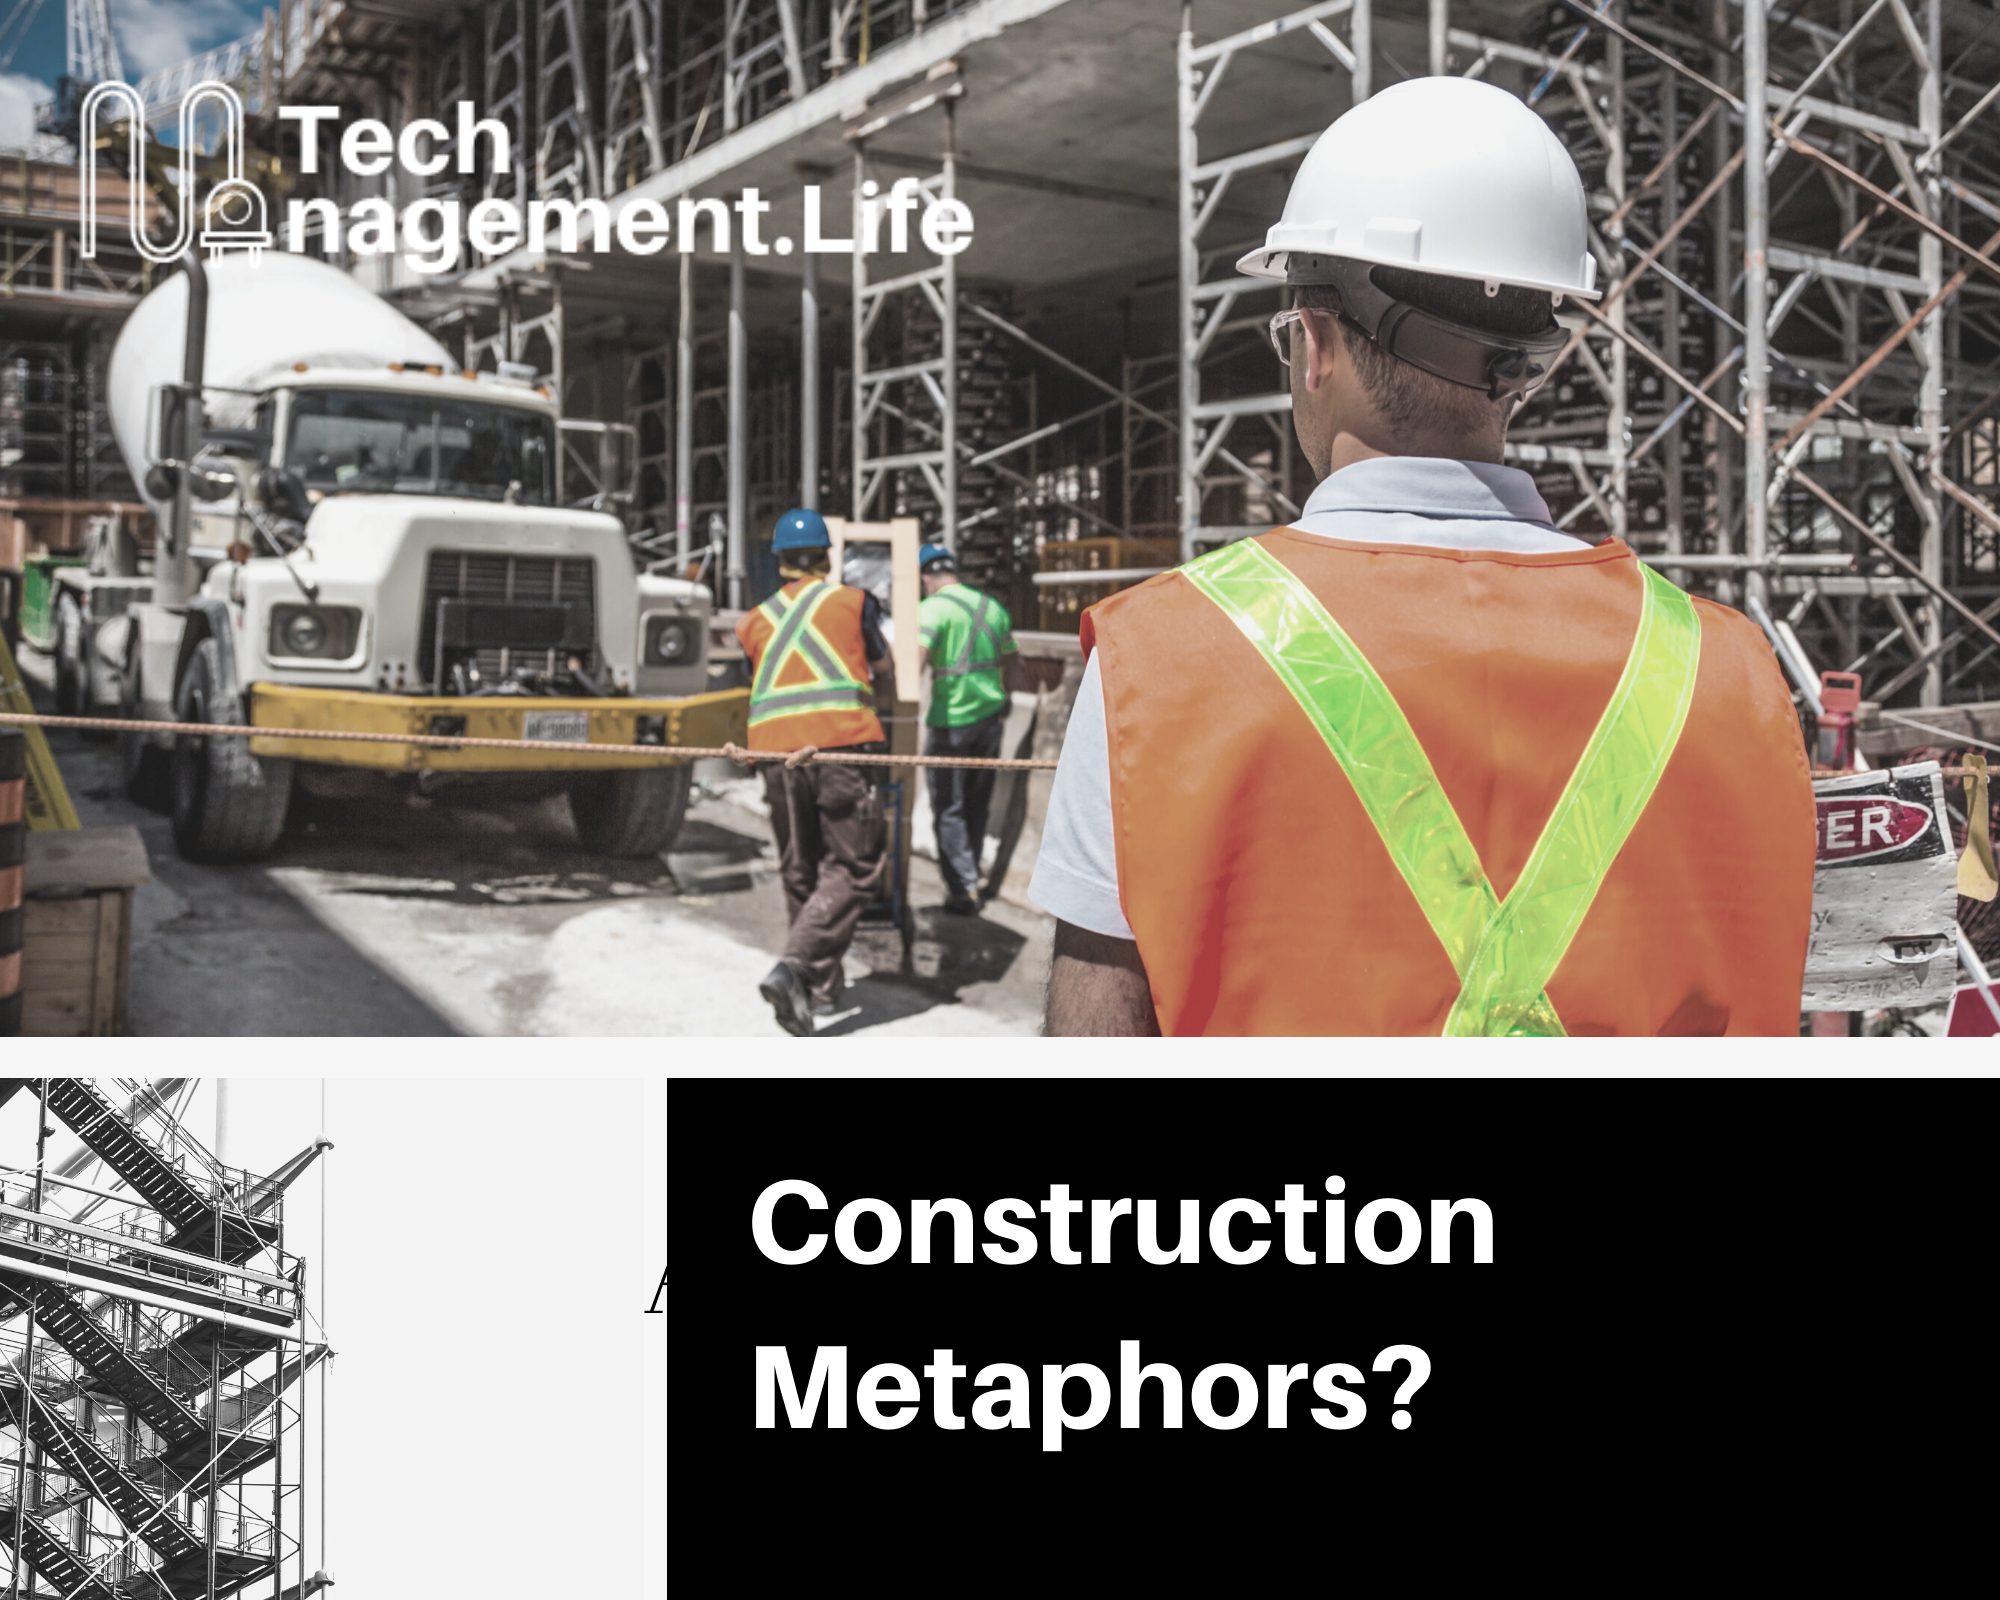 Construction Metaphors No Longer Work For Software - TechManagement.Life